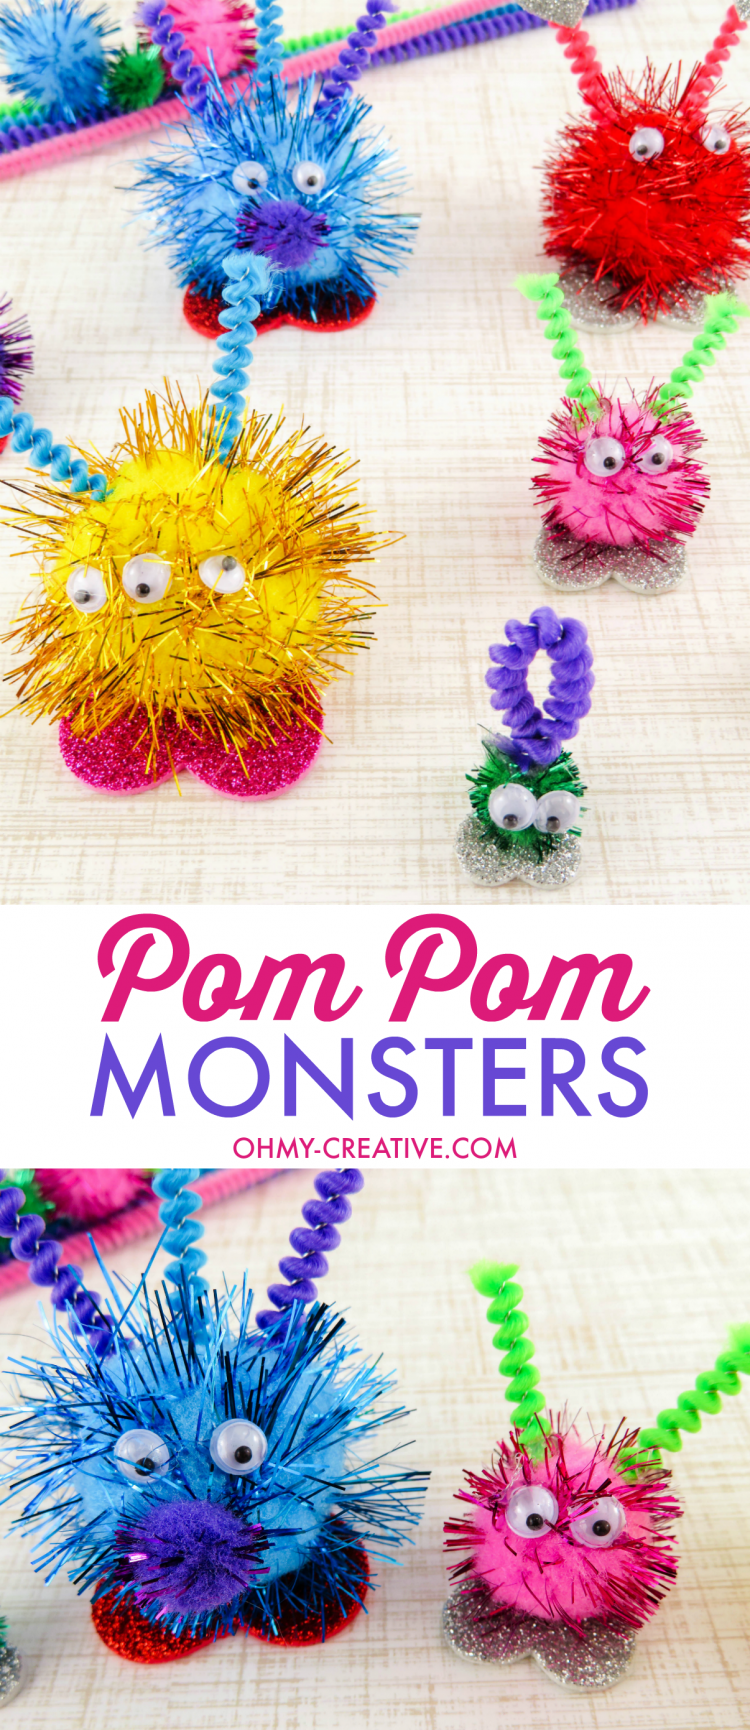 These Pom Pom Monsters are and easy kids craft! | OHMY-CREATIVE.COM | Valentine's Day Craft | Valentine Pom Pom Monsters | pom pom craft | preschool craft | kindergarten craft